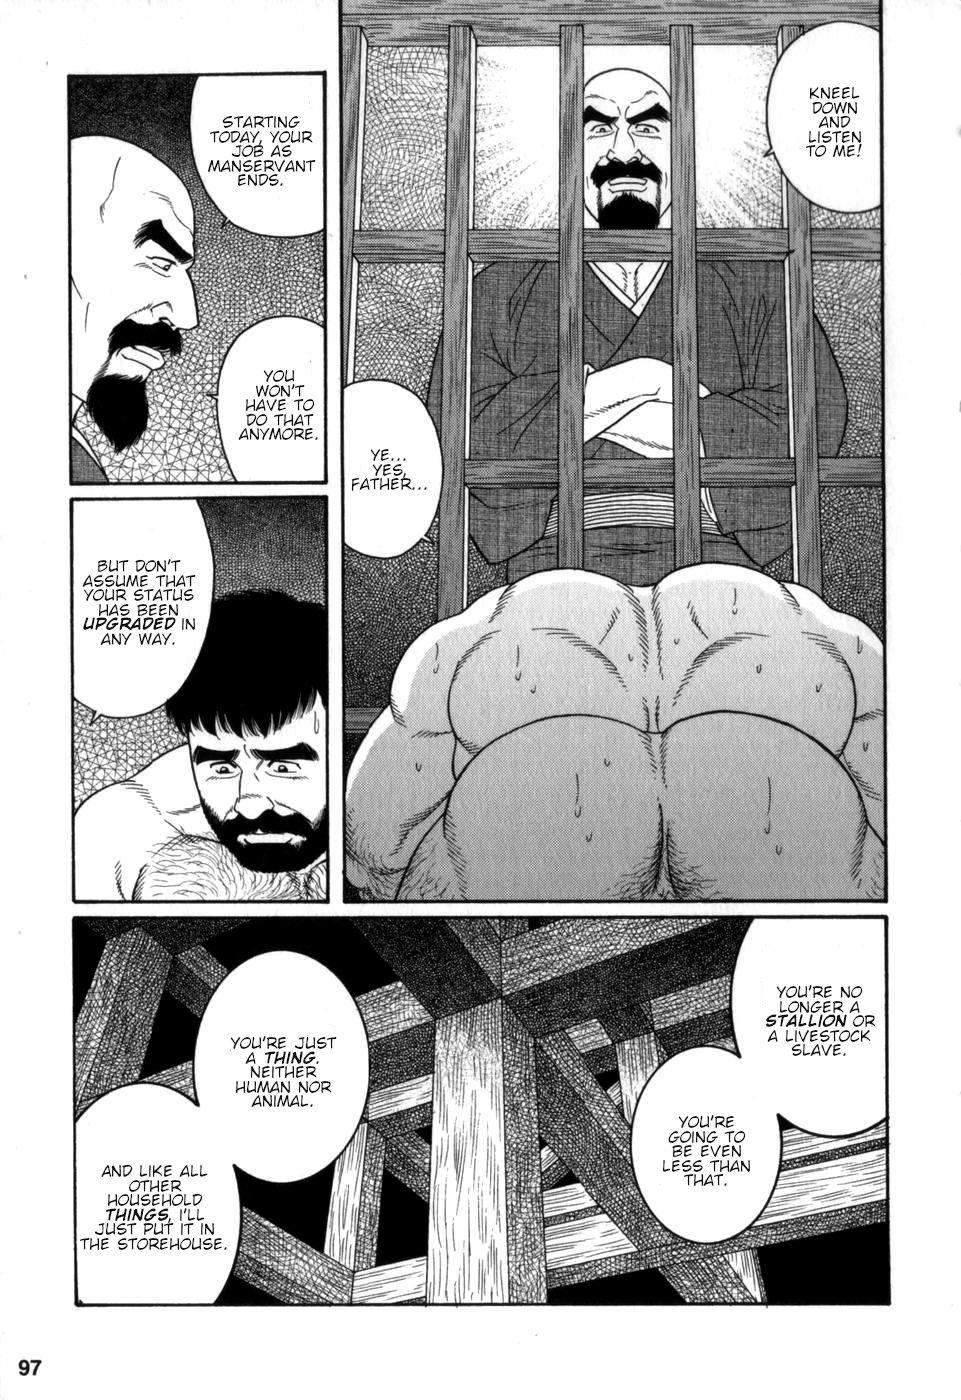 Gedou no Ie Chuukan | House of Brutes Vol. 2 Ch. 3 26